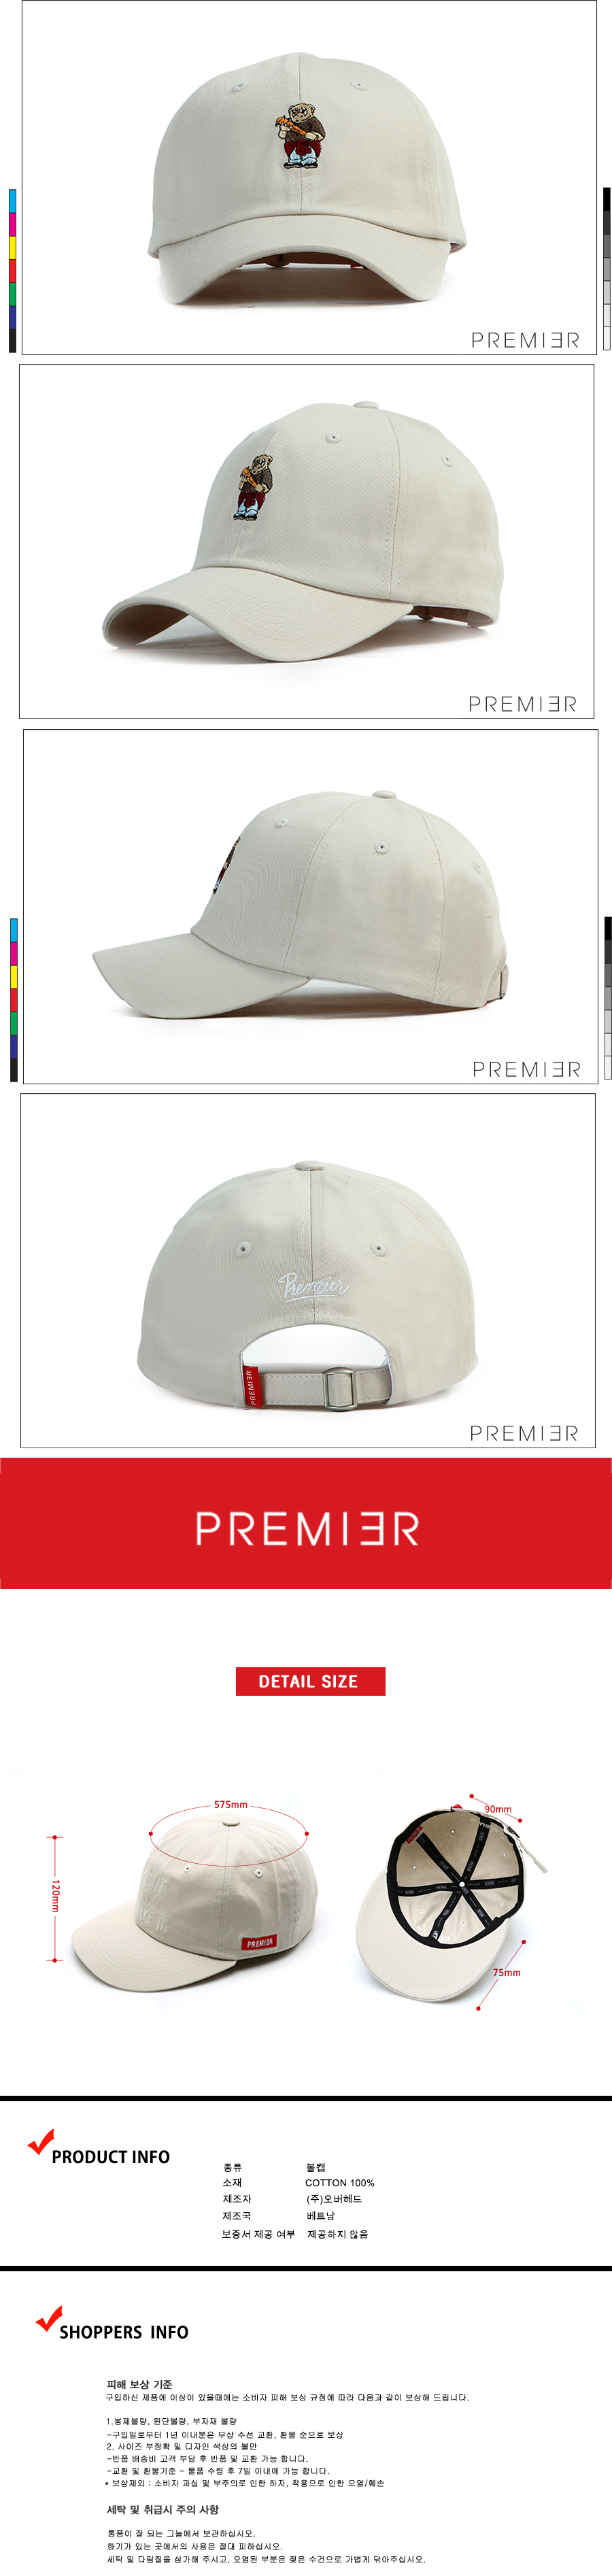 [ PREMIER ] [Premier] Ball Cap Bad Bear Beige (P926)